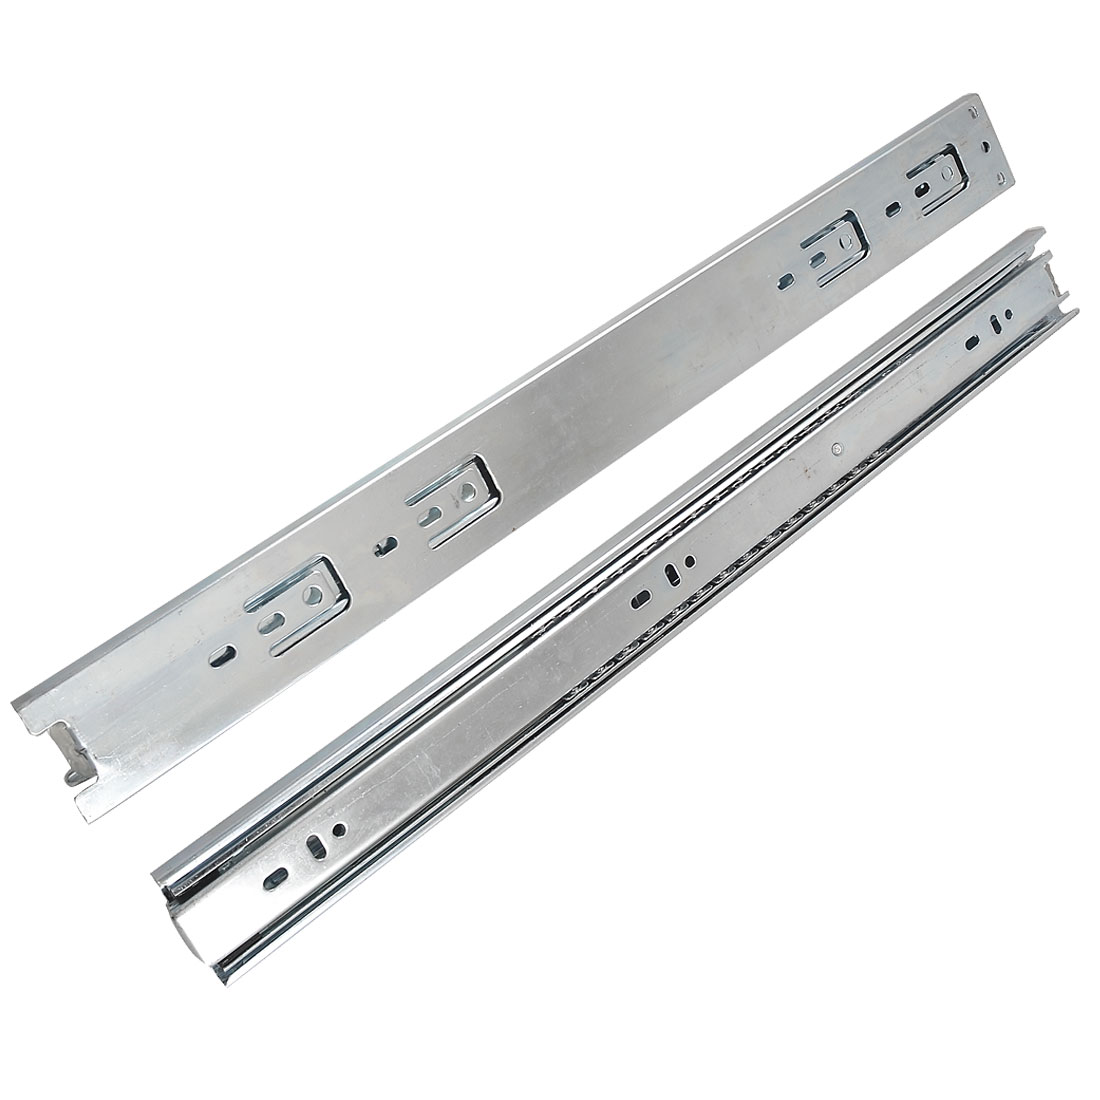 "2 Pcs 18"" Steel Ball Bearing Telescoping Drawer Runners Slide Rails"